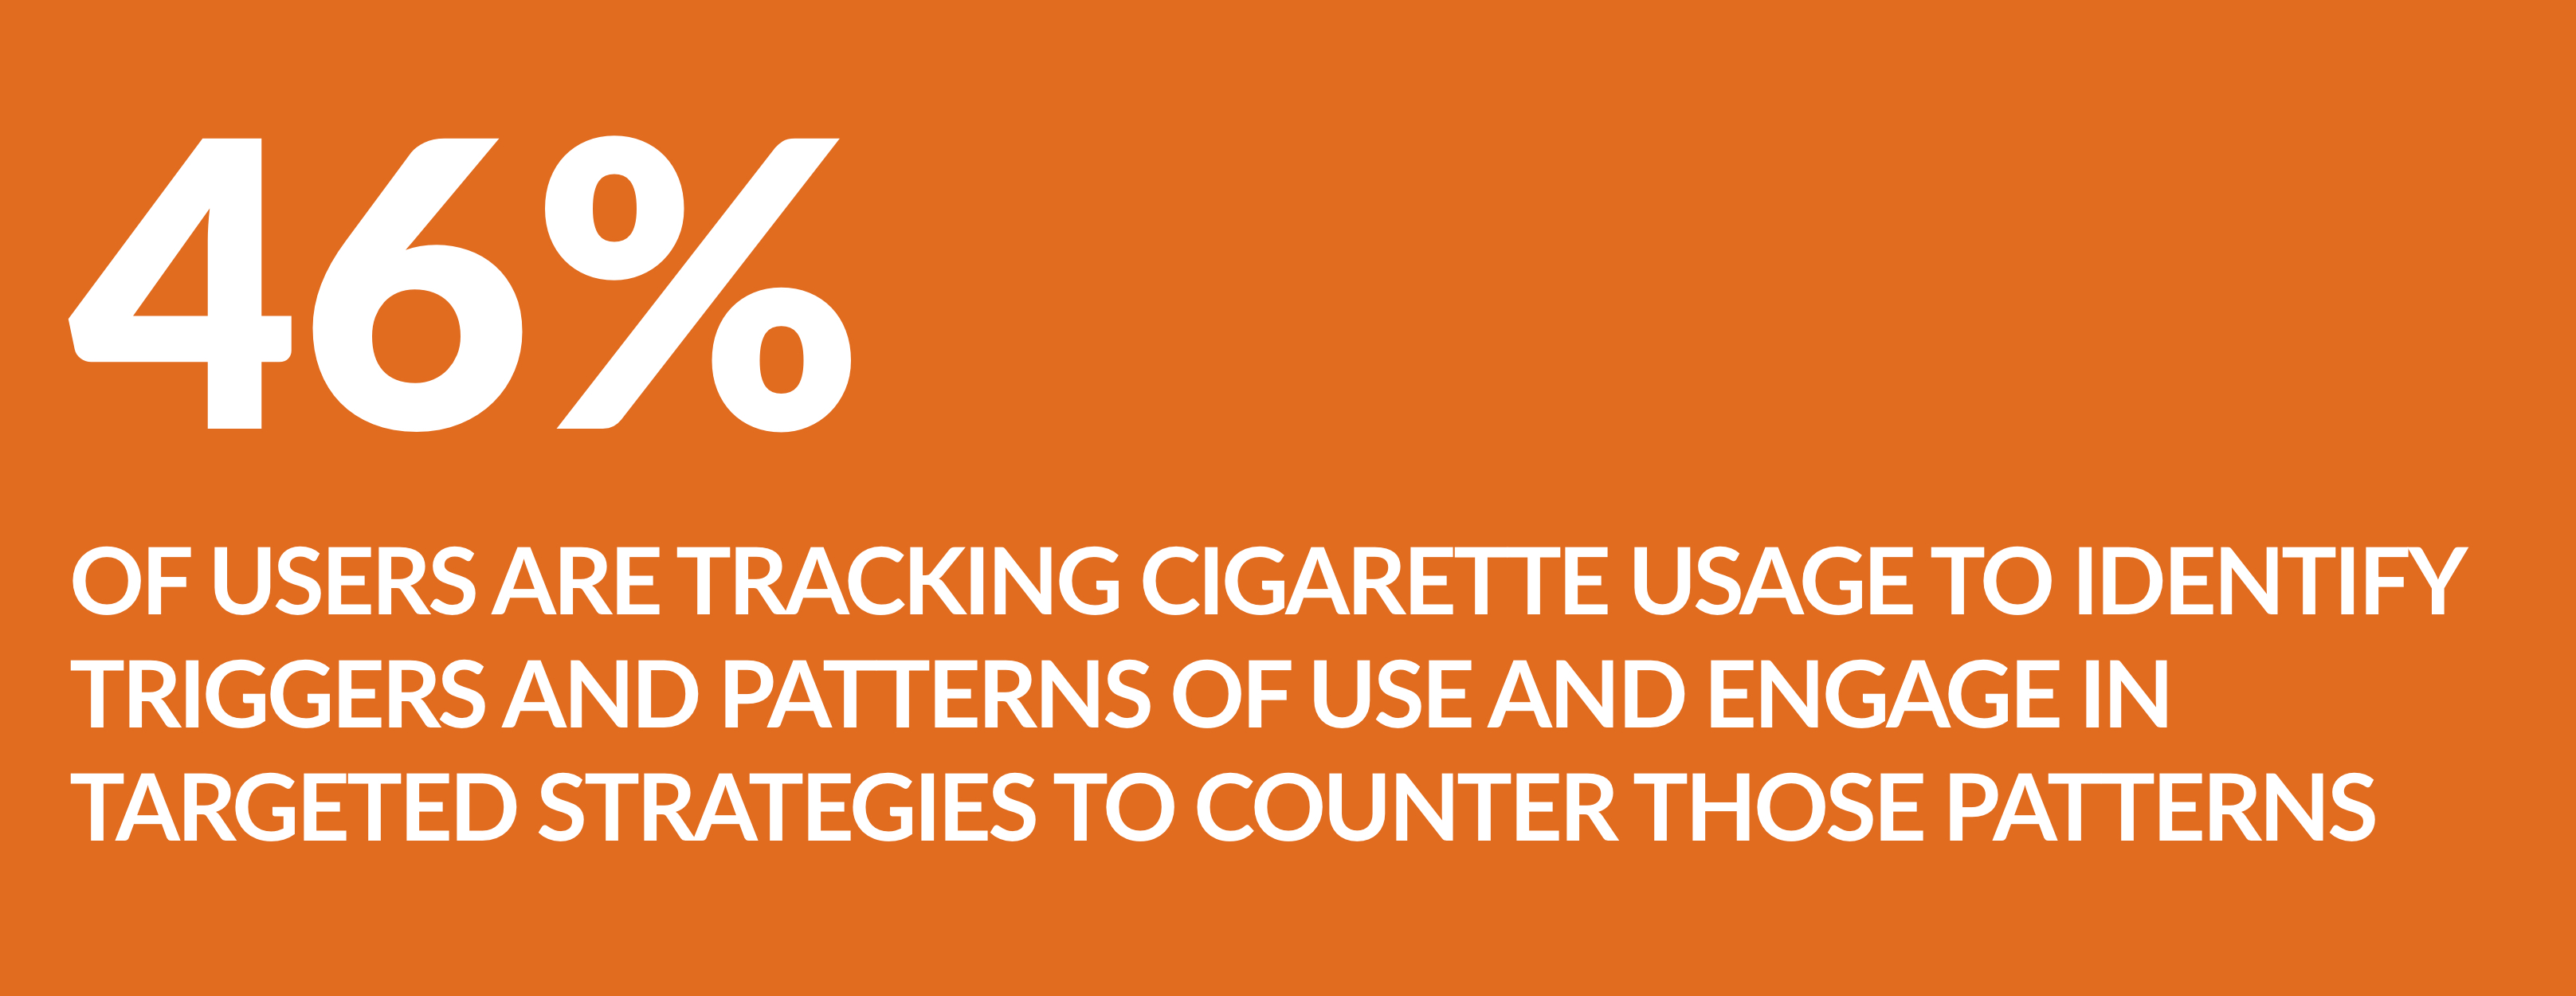 46% of users are tracking cigarette usage to identify triggers and patterns or use and engage in targeted strategies to counter those patterns.